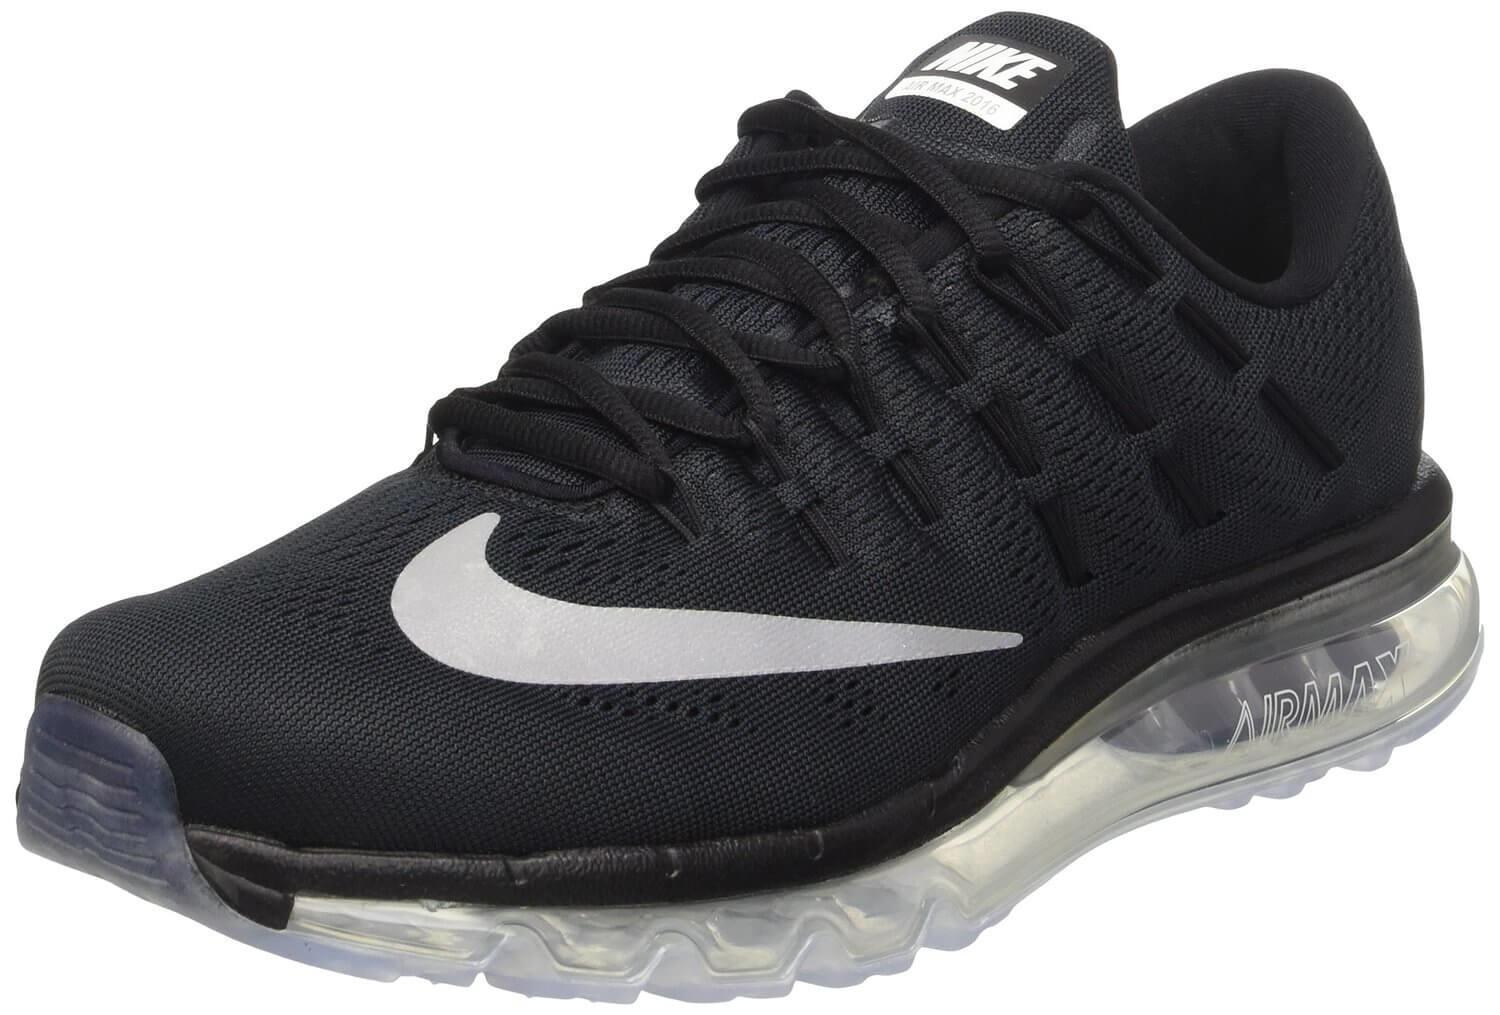 cheaper e7ff0 31cd0 Nike Air Max 2016 Reviewed & Rated for Quality